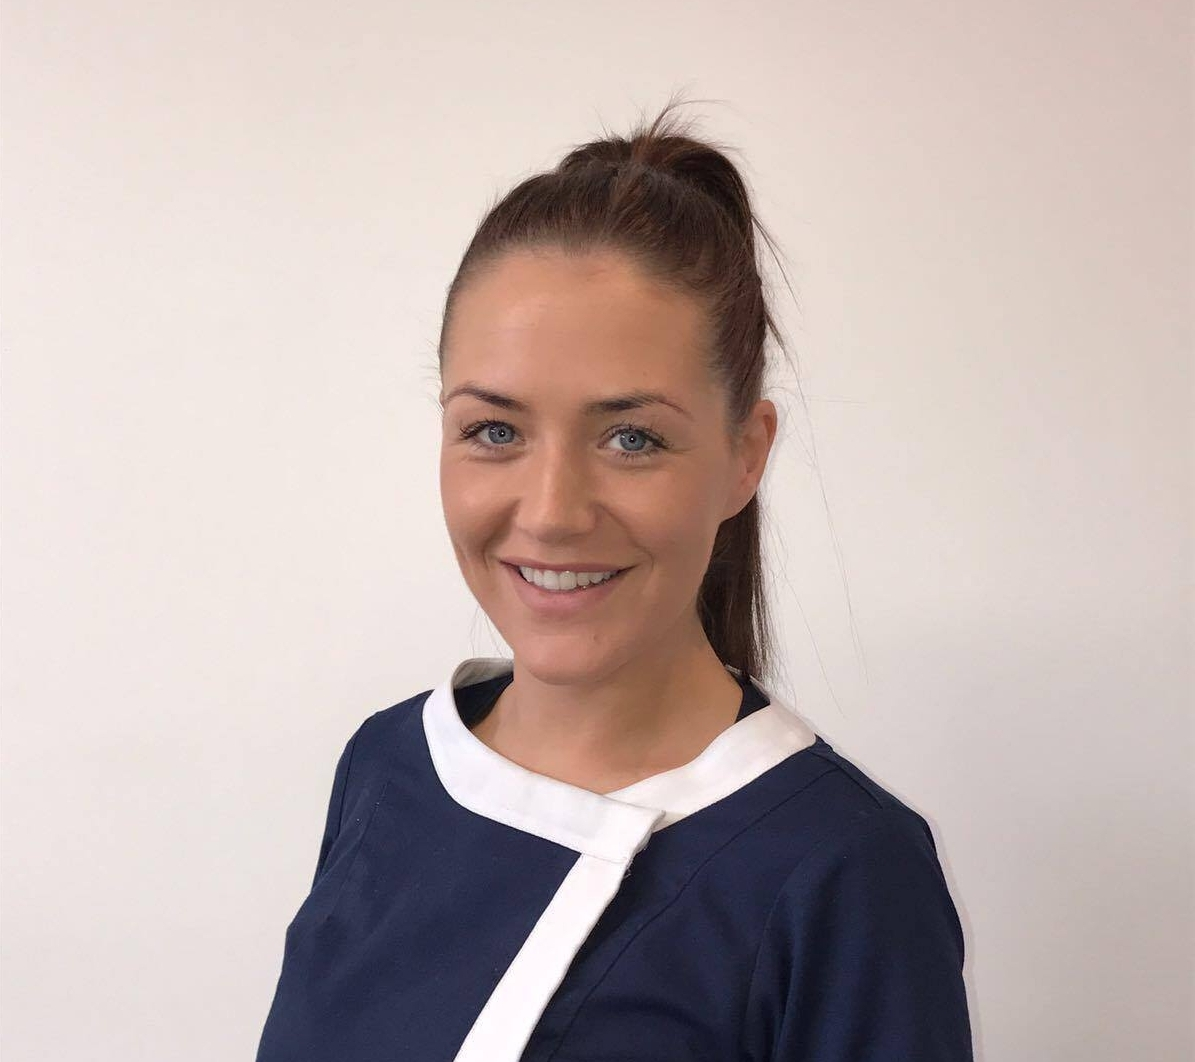 Nicole Donughue- Dental Nurse   Nicole is one of our lovely dental nurses. She studied dental nursing in Marino College Dublin. She really enjoys meeting new patients and will no doubt make you feel welcome and at ease during your visit. Nicole has plans to further her career on and become a dental  hygienist here at kbm dental.